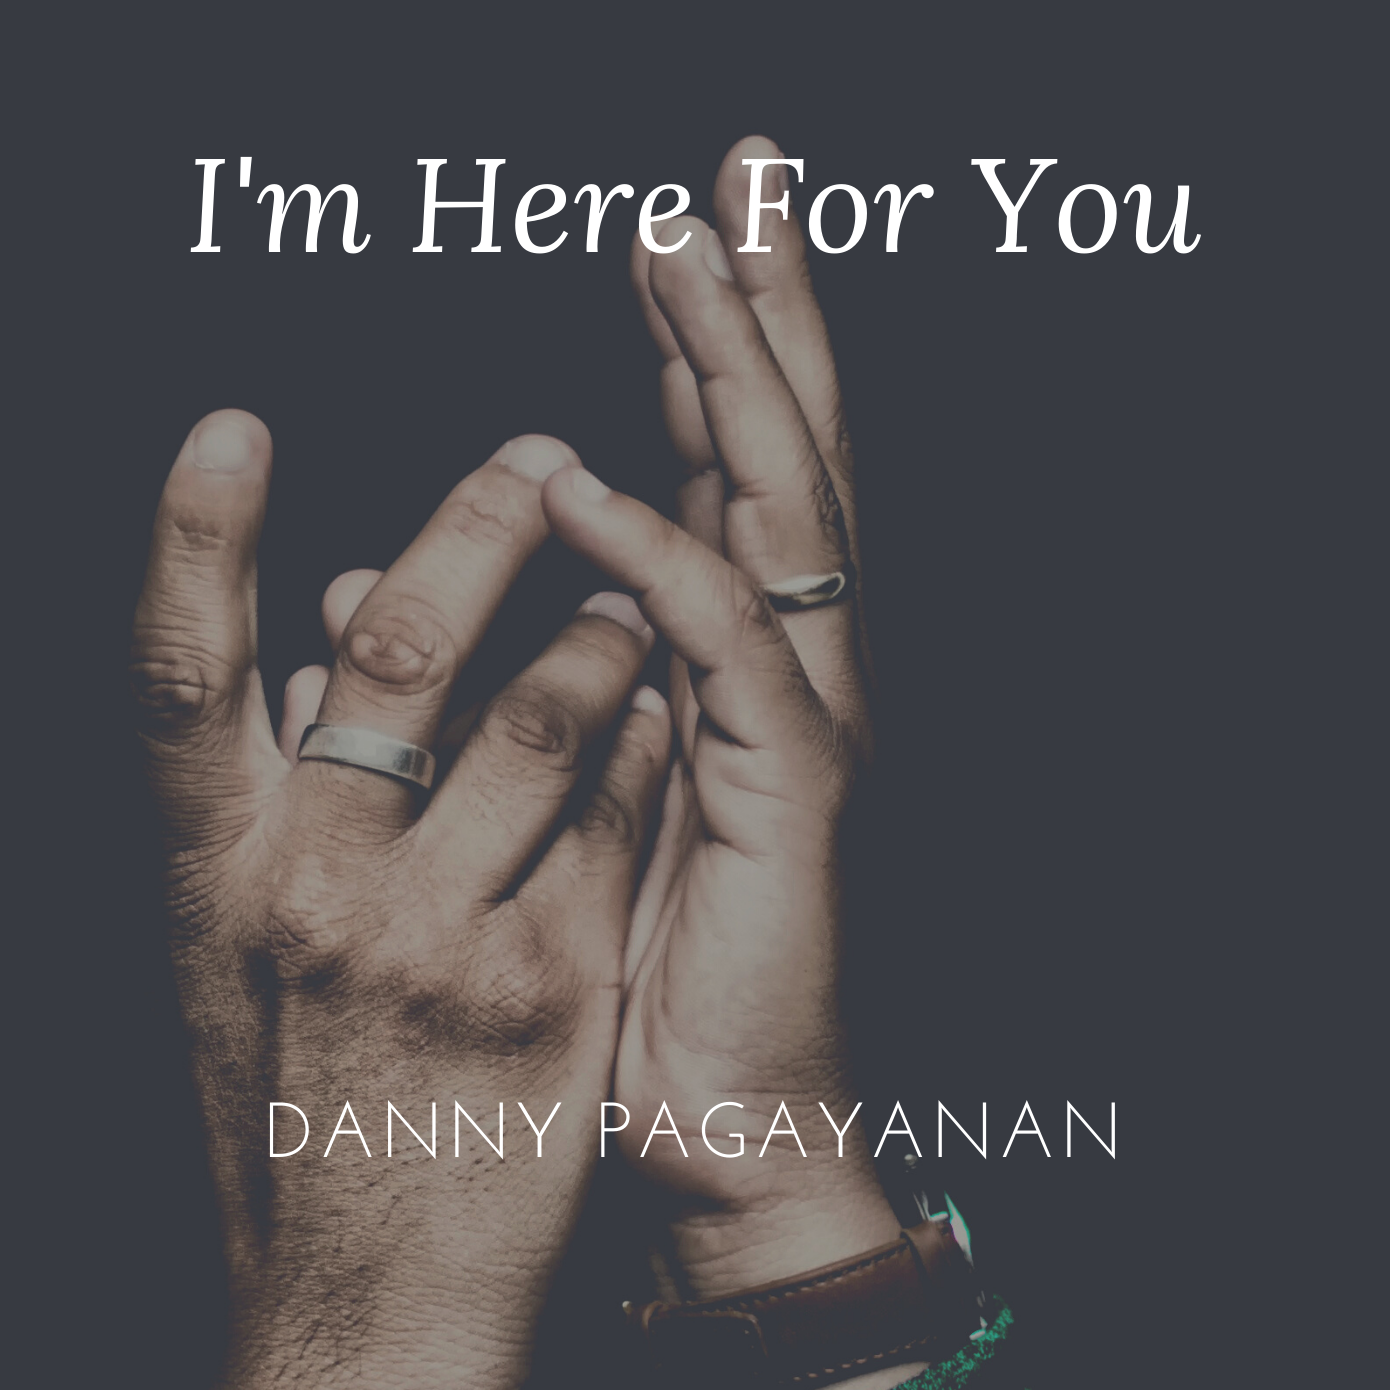 Claiming to Be the Light in the Middle of Darkness: This is Danny Pagayanan